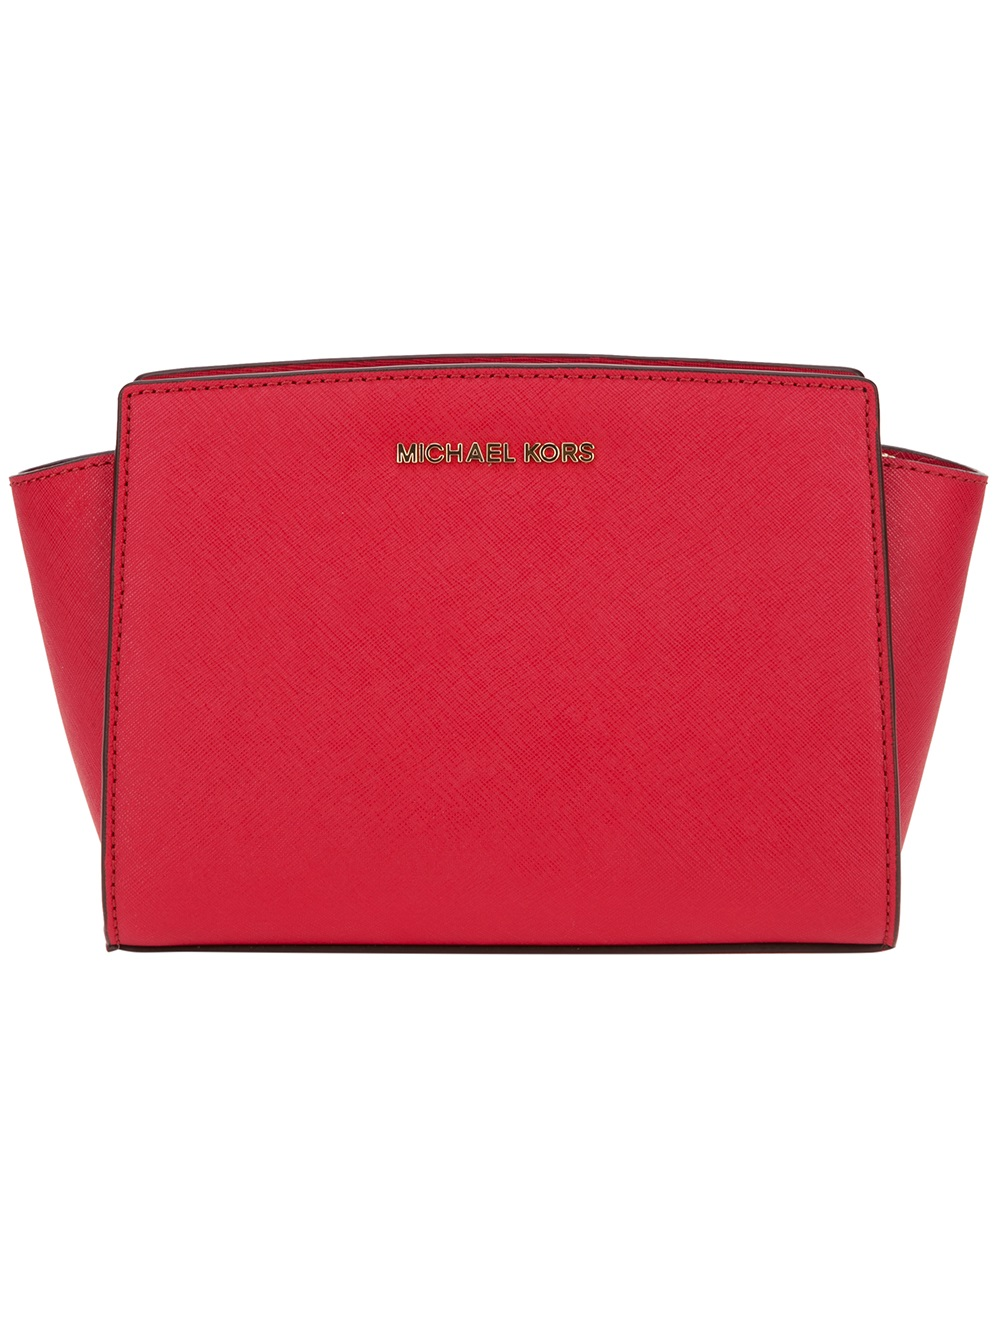 michael michael kors 39 selma 39 pochette in red lyst. Black Bedroom Furniture Sets. Home Design Ideas